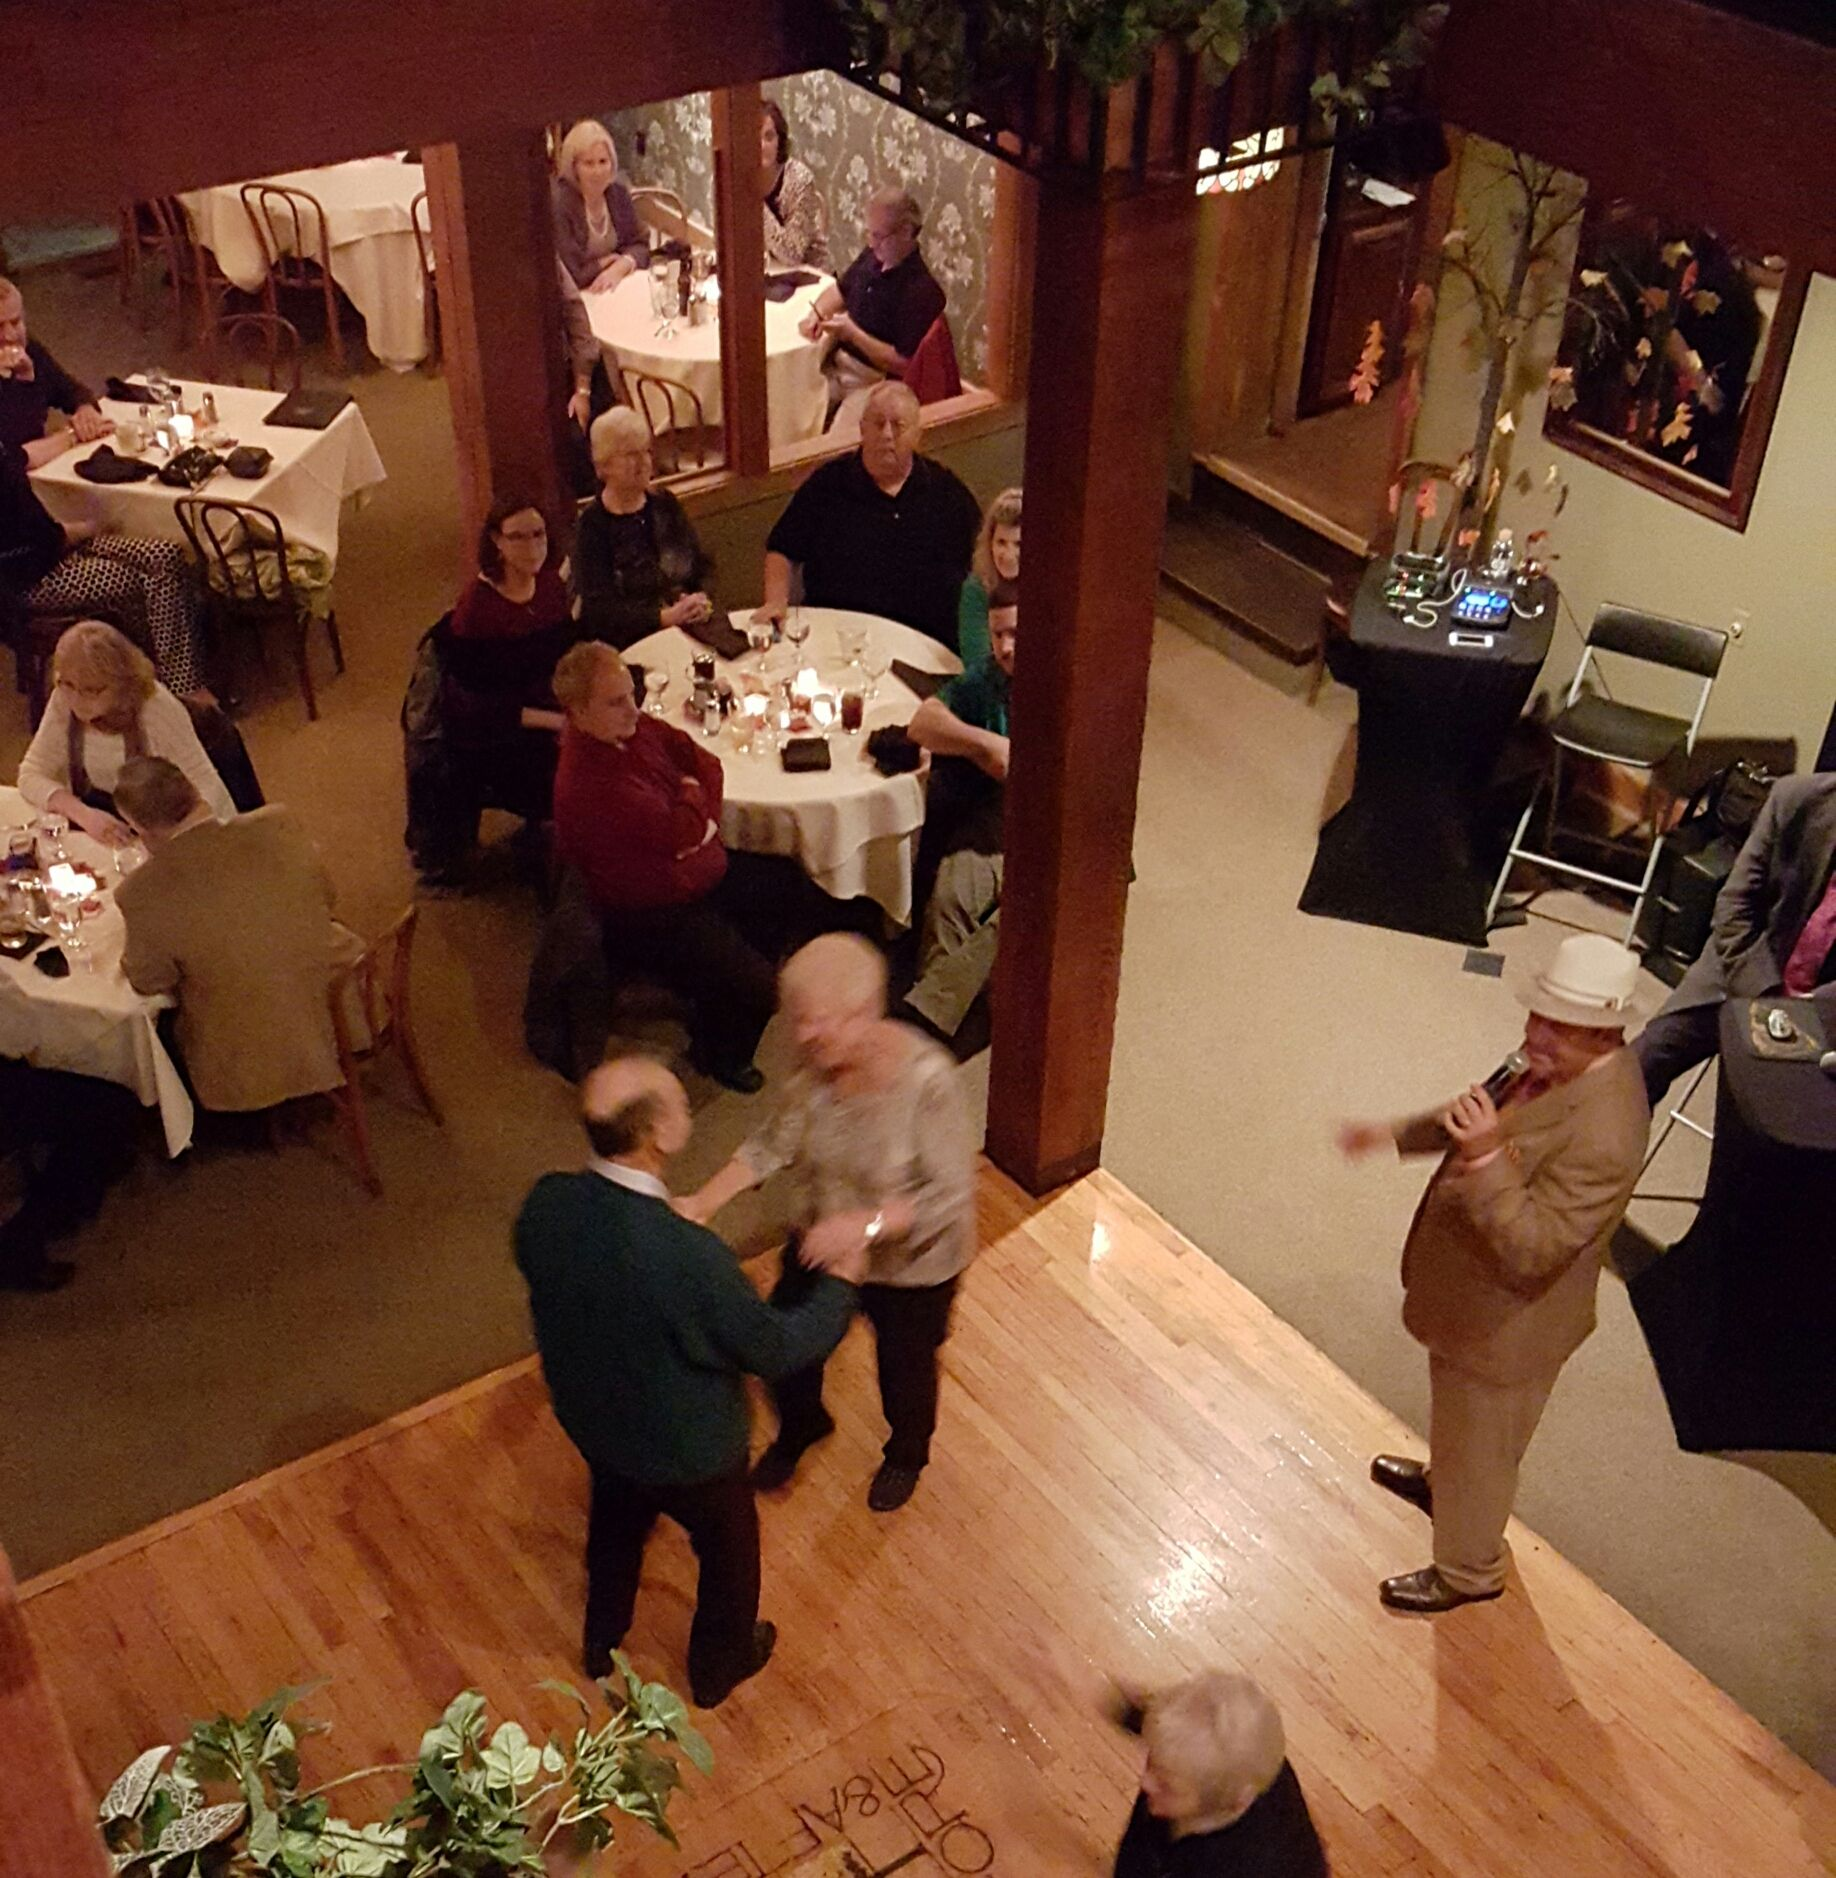 Lakeside Banquet Room Dance Floor Great View From The Balcony